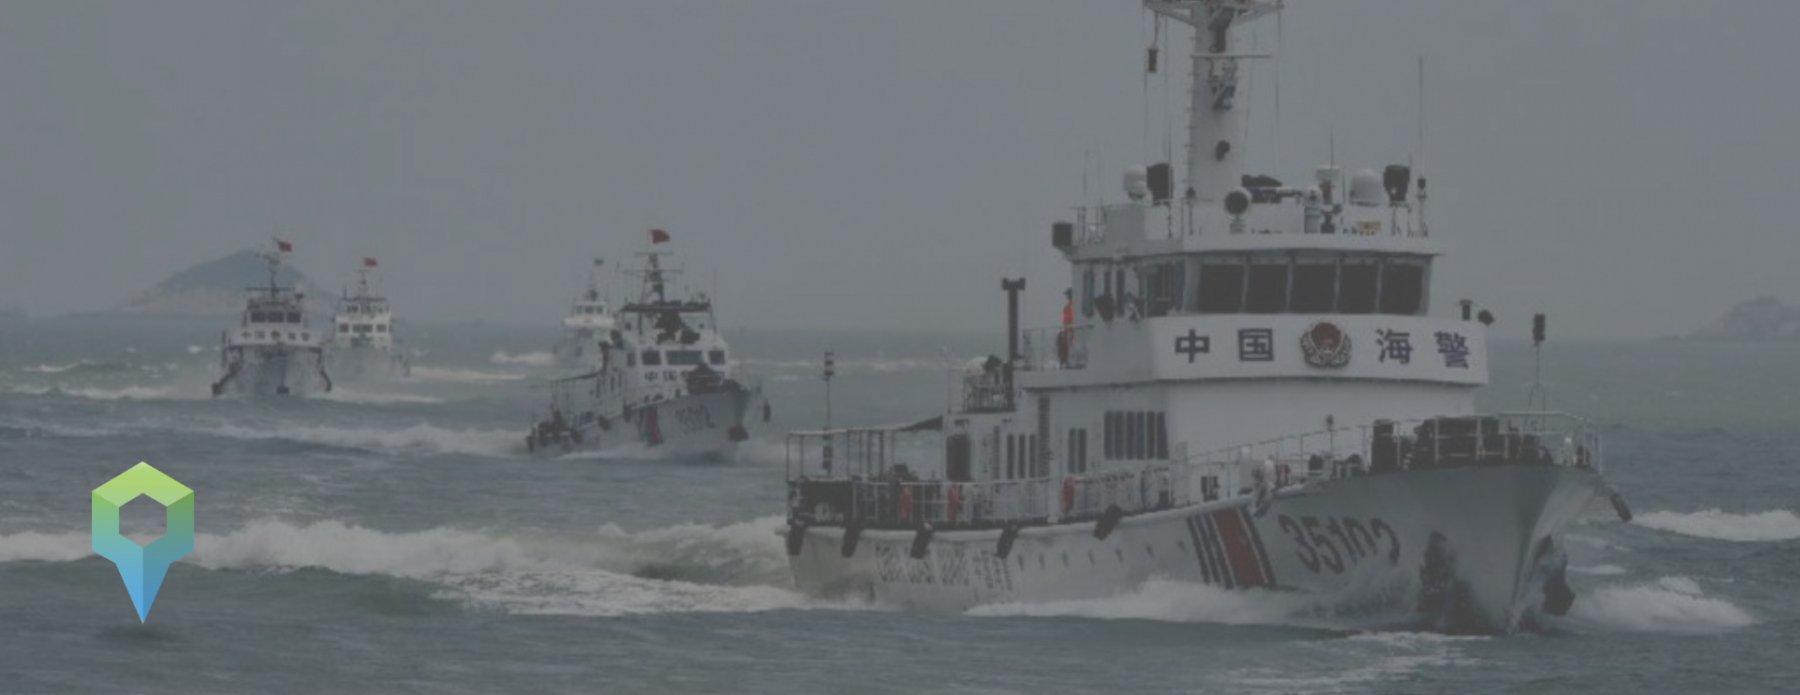 Chinese Coast Guards now have People's Liberation Army Navy former fleet ships after militarisation of South China Sea